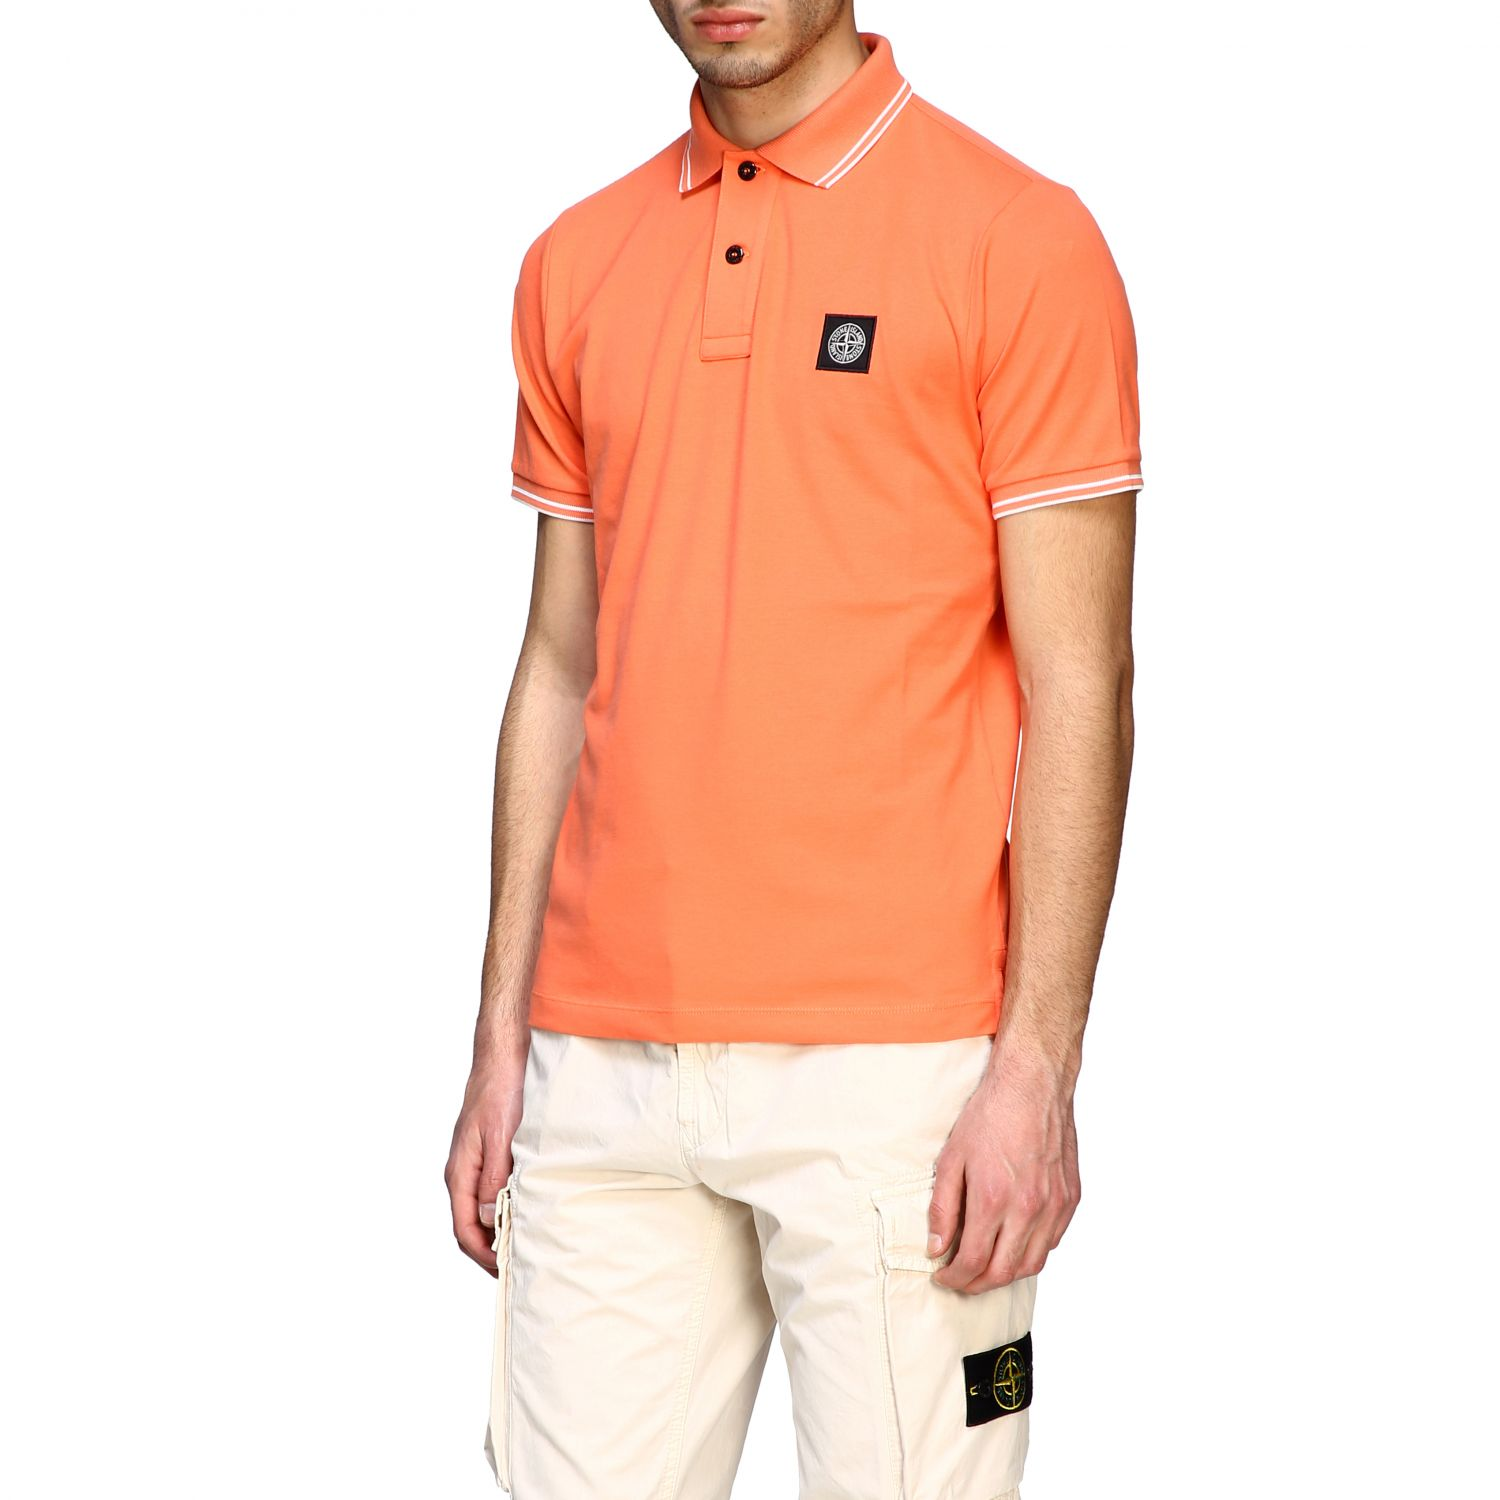 T-shirt men Stone Island orange 4